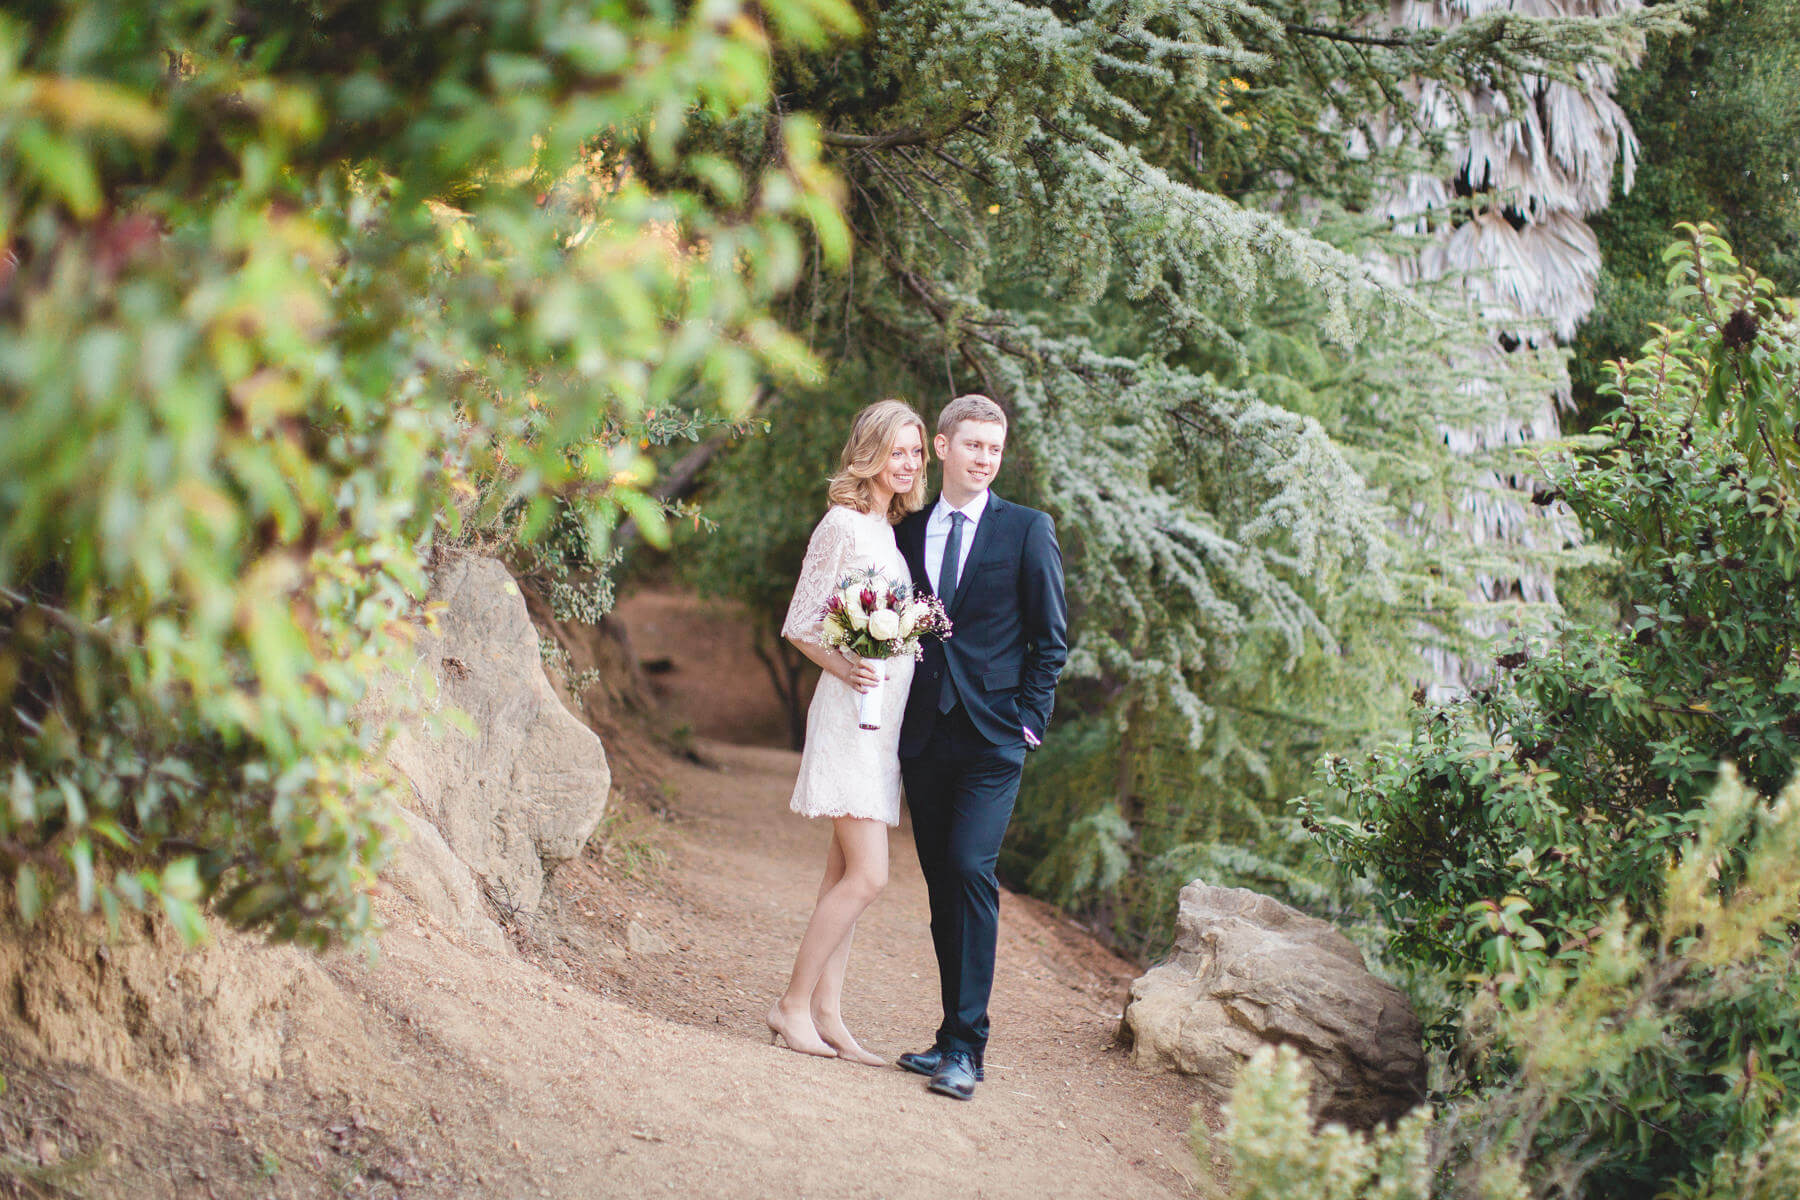 the-light-and-glass-wedding-engagement-photography-20151218-049.jpg